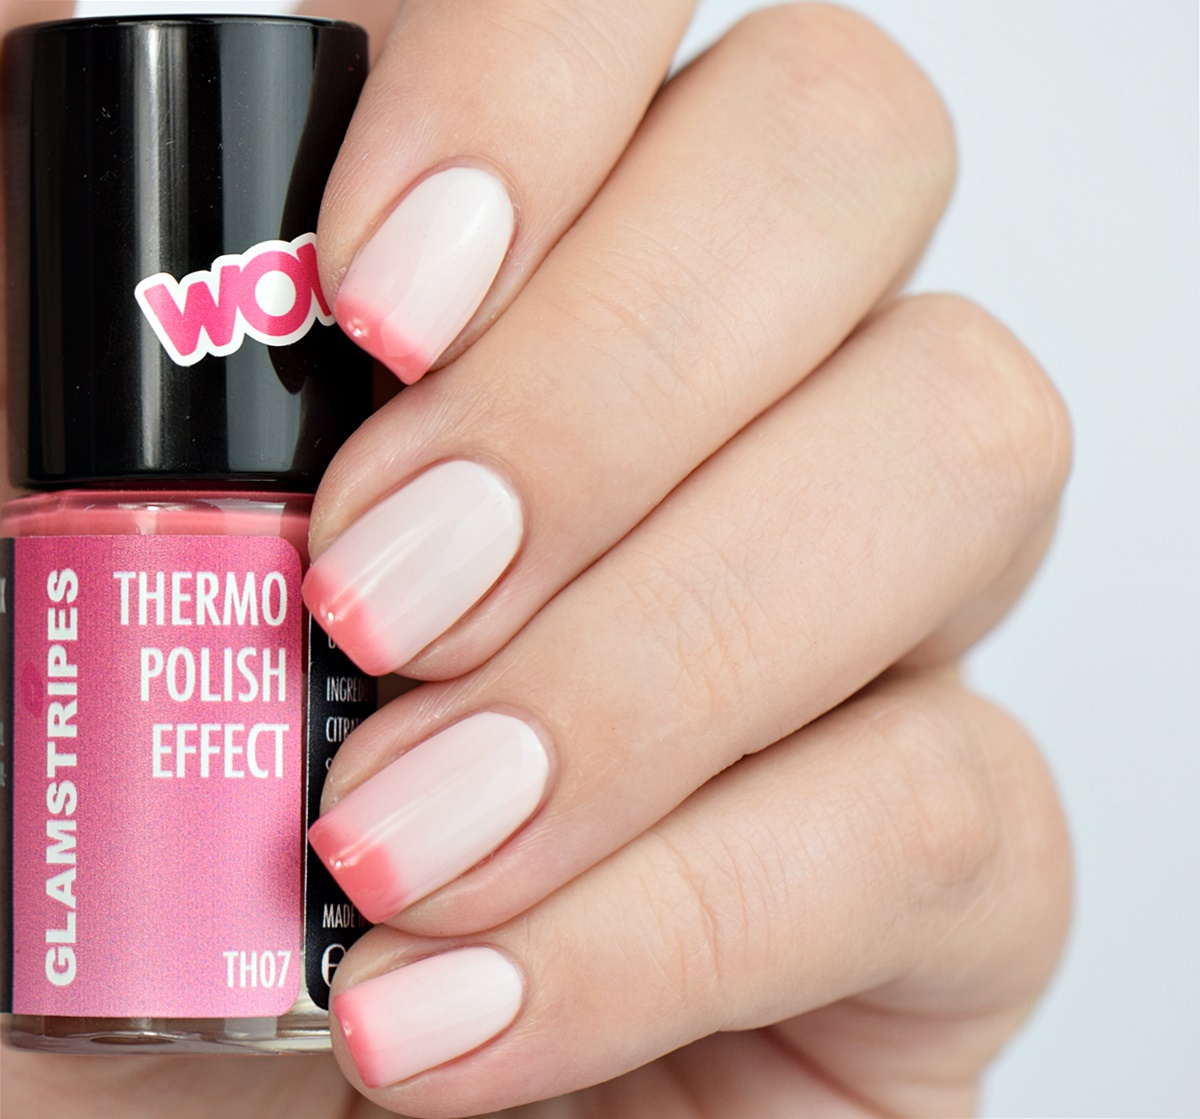 glamstripes-thermo-polish-effect-th07-white-to-light-pink-thermo-nagellack-ohne-lampe